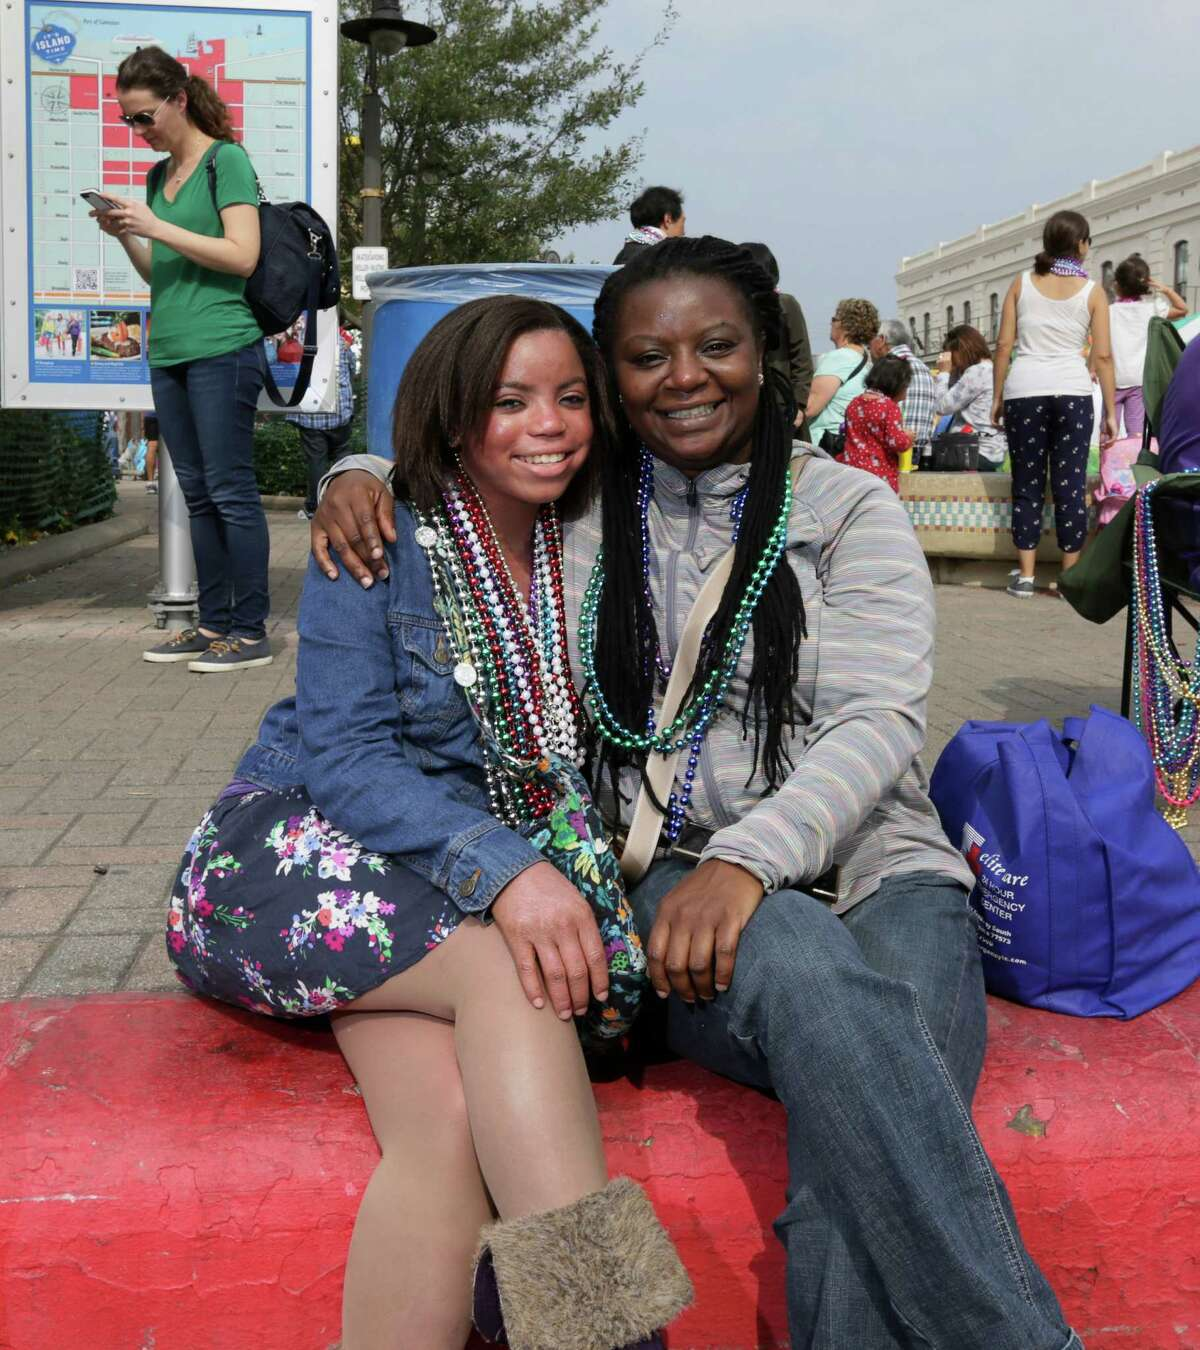 People pose for a photo before the Sunshine Kids Parade along Strand Street Sunday, Jan. 31, 2016, in Galveston.